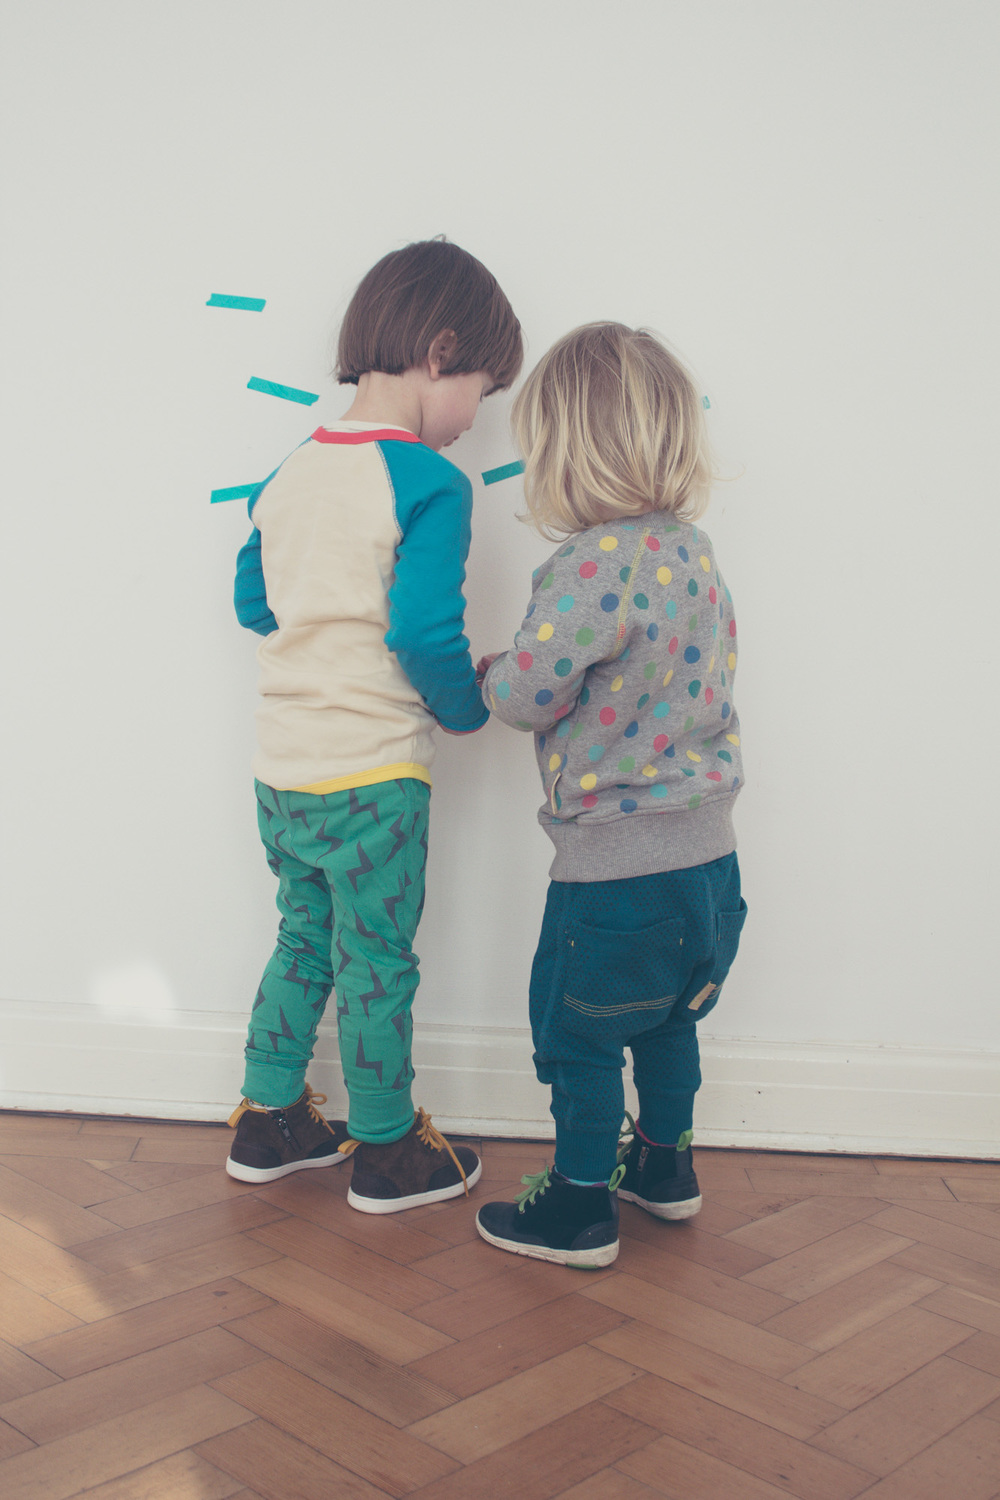 Ellie and Frankie in Boys and Girls + Clarks, photography by Wild Fox Portraits for Seeds and Stitches blog.